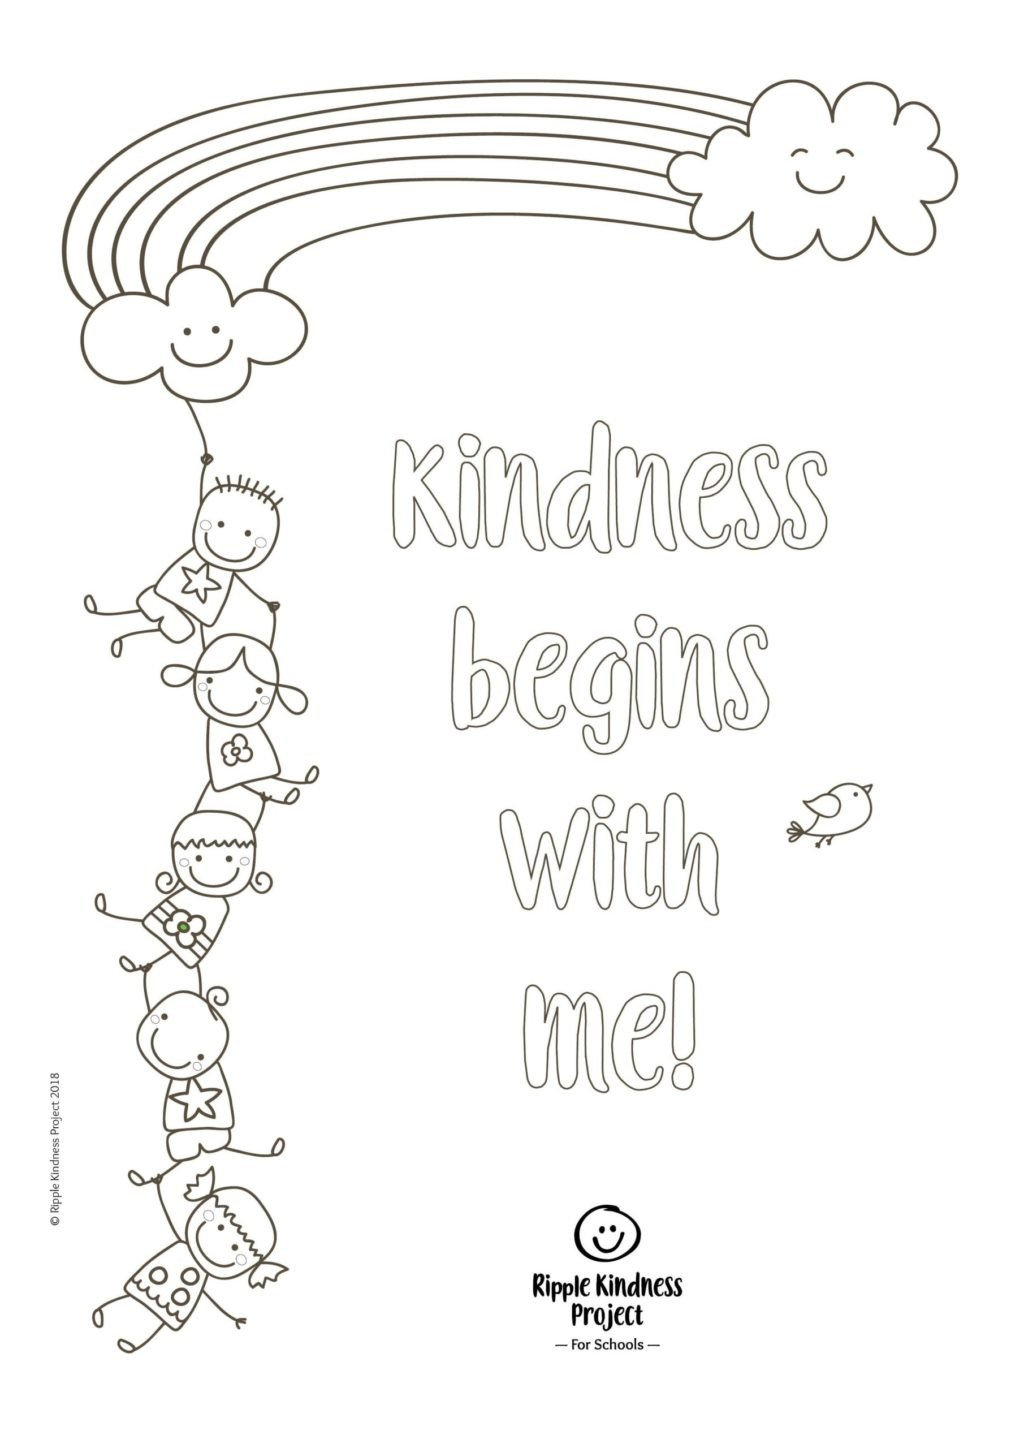 kids fun worksheets amazing photo ideas printables teaching kindness mindfulness for 1024x1448